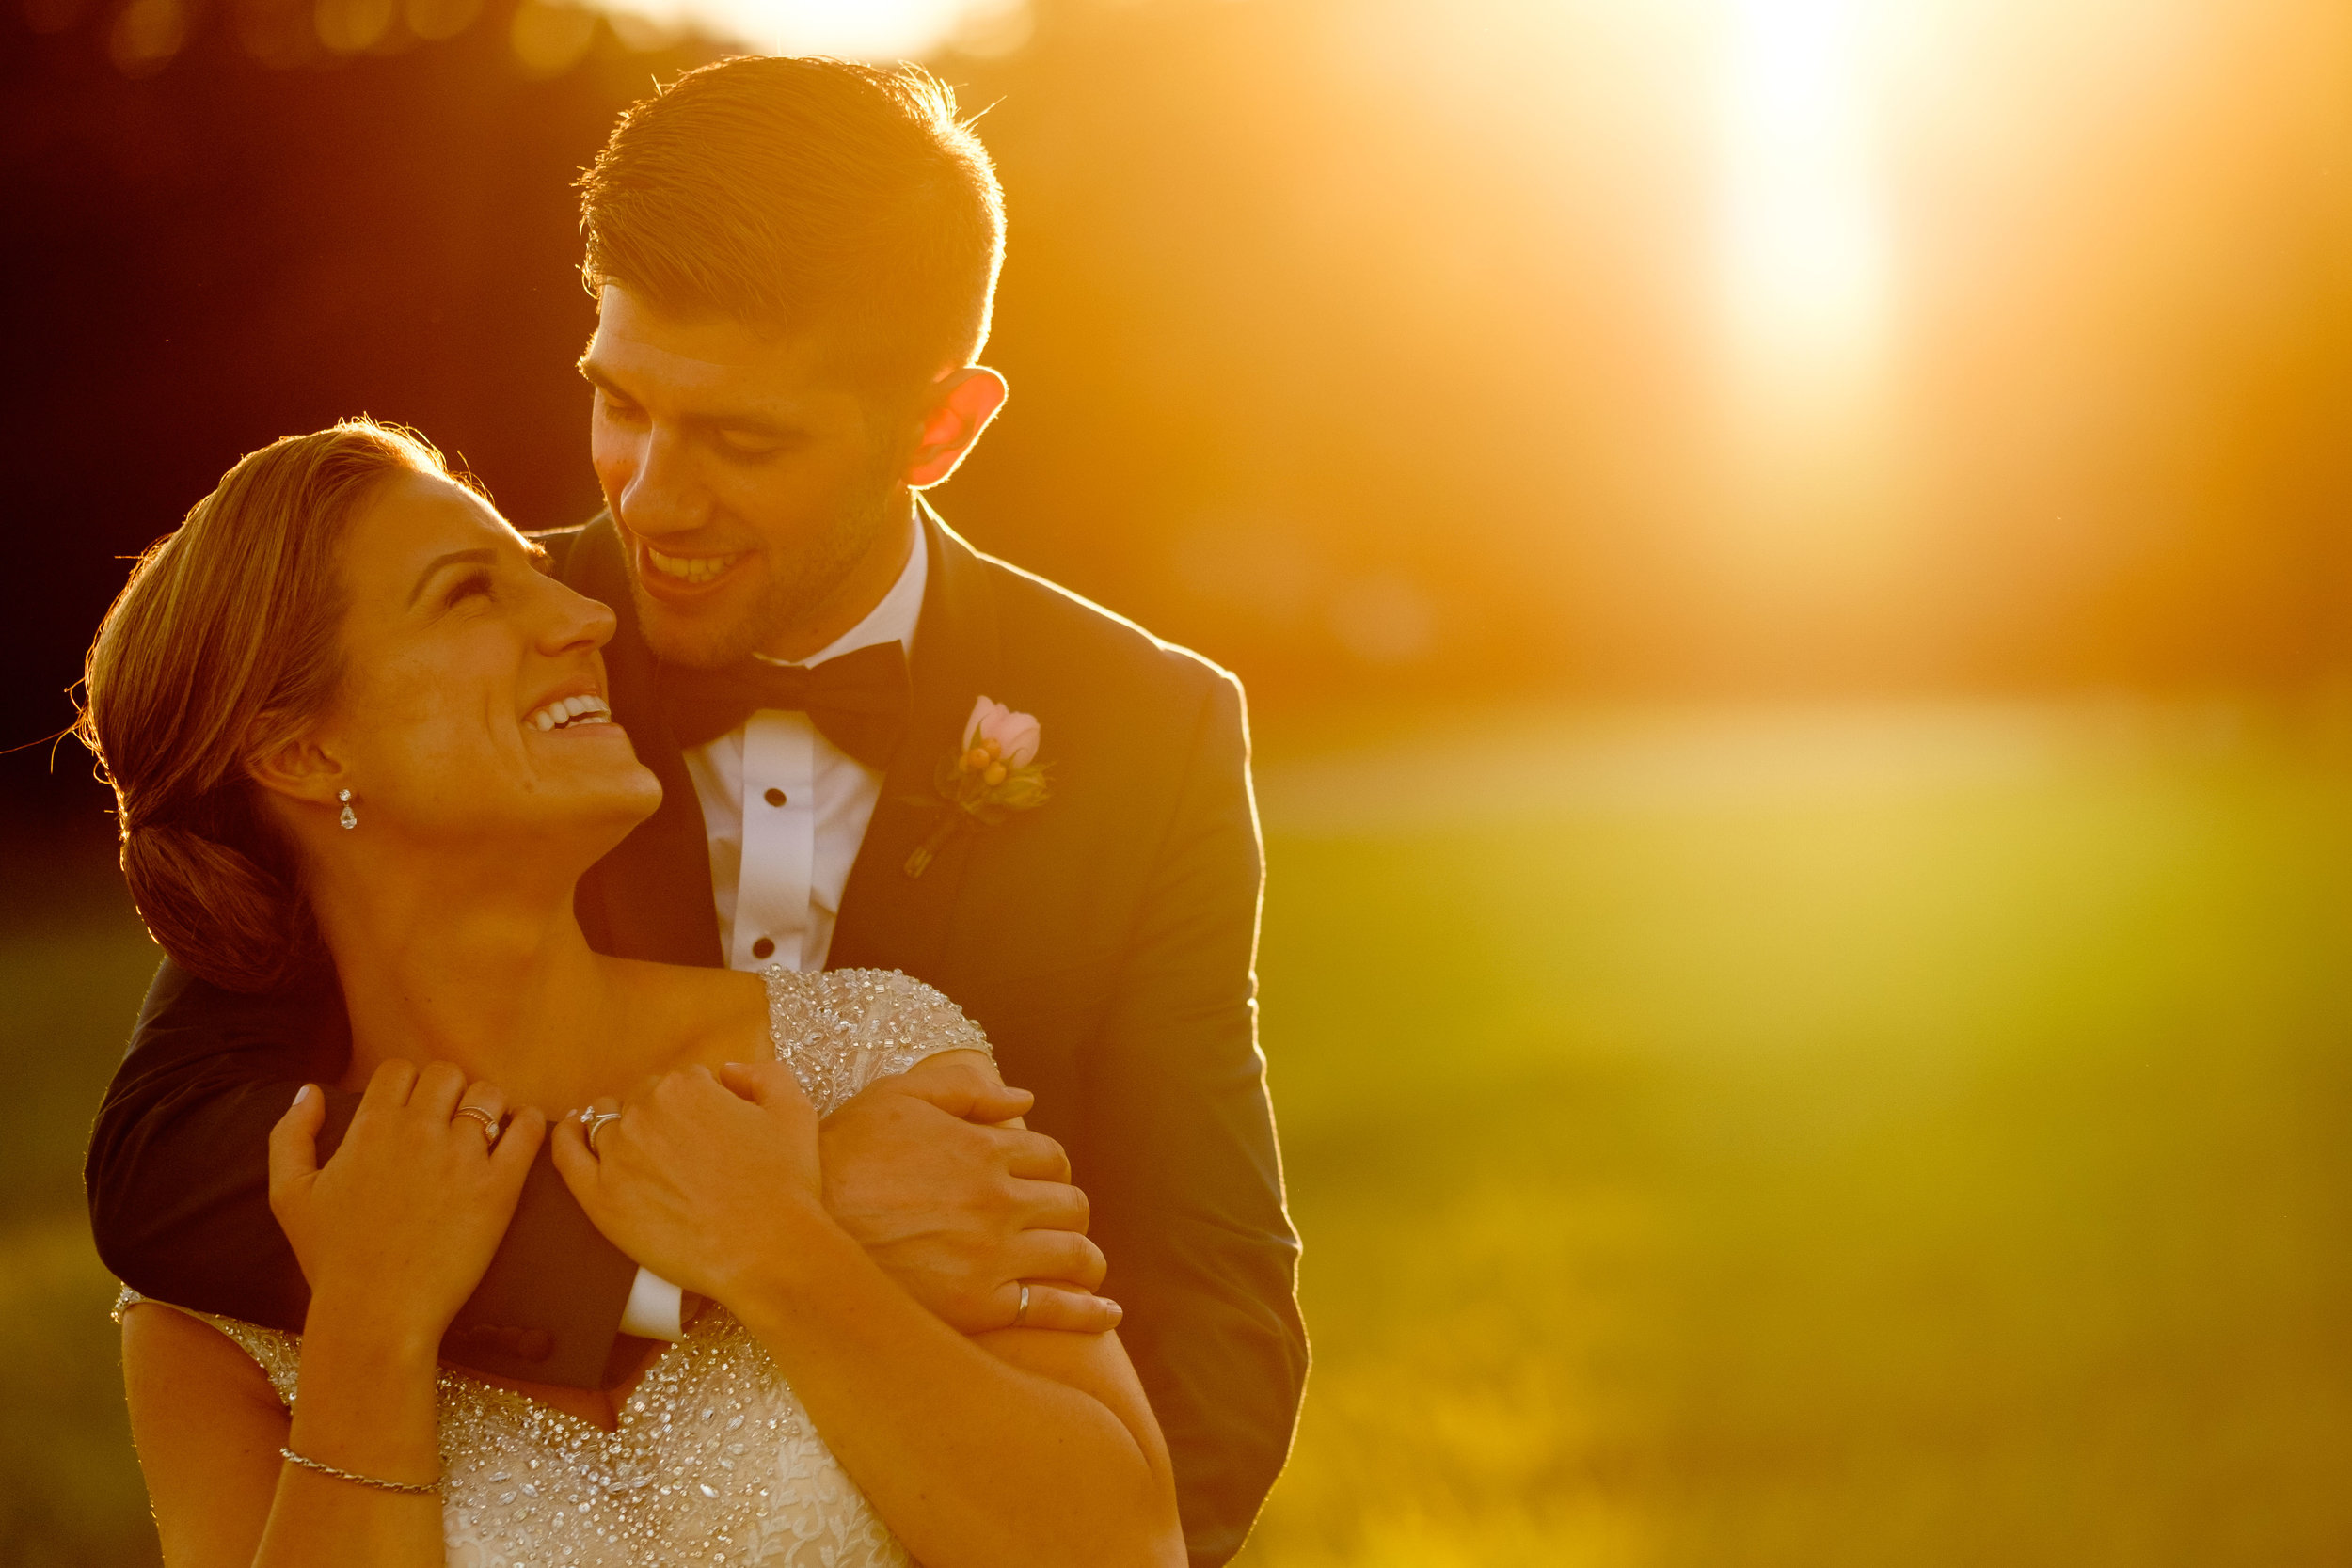 A wedding portrait of Sabrina + Zach at sunset during their wedding reception at the Jewel Event Centre.